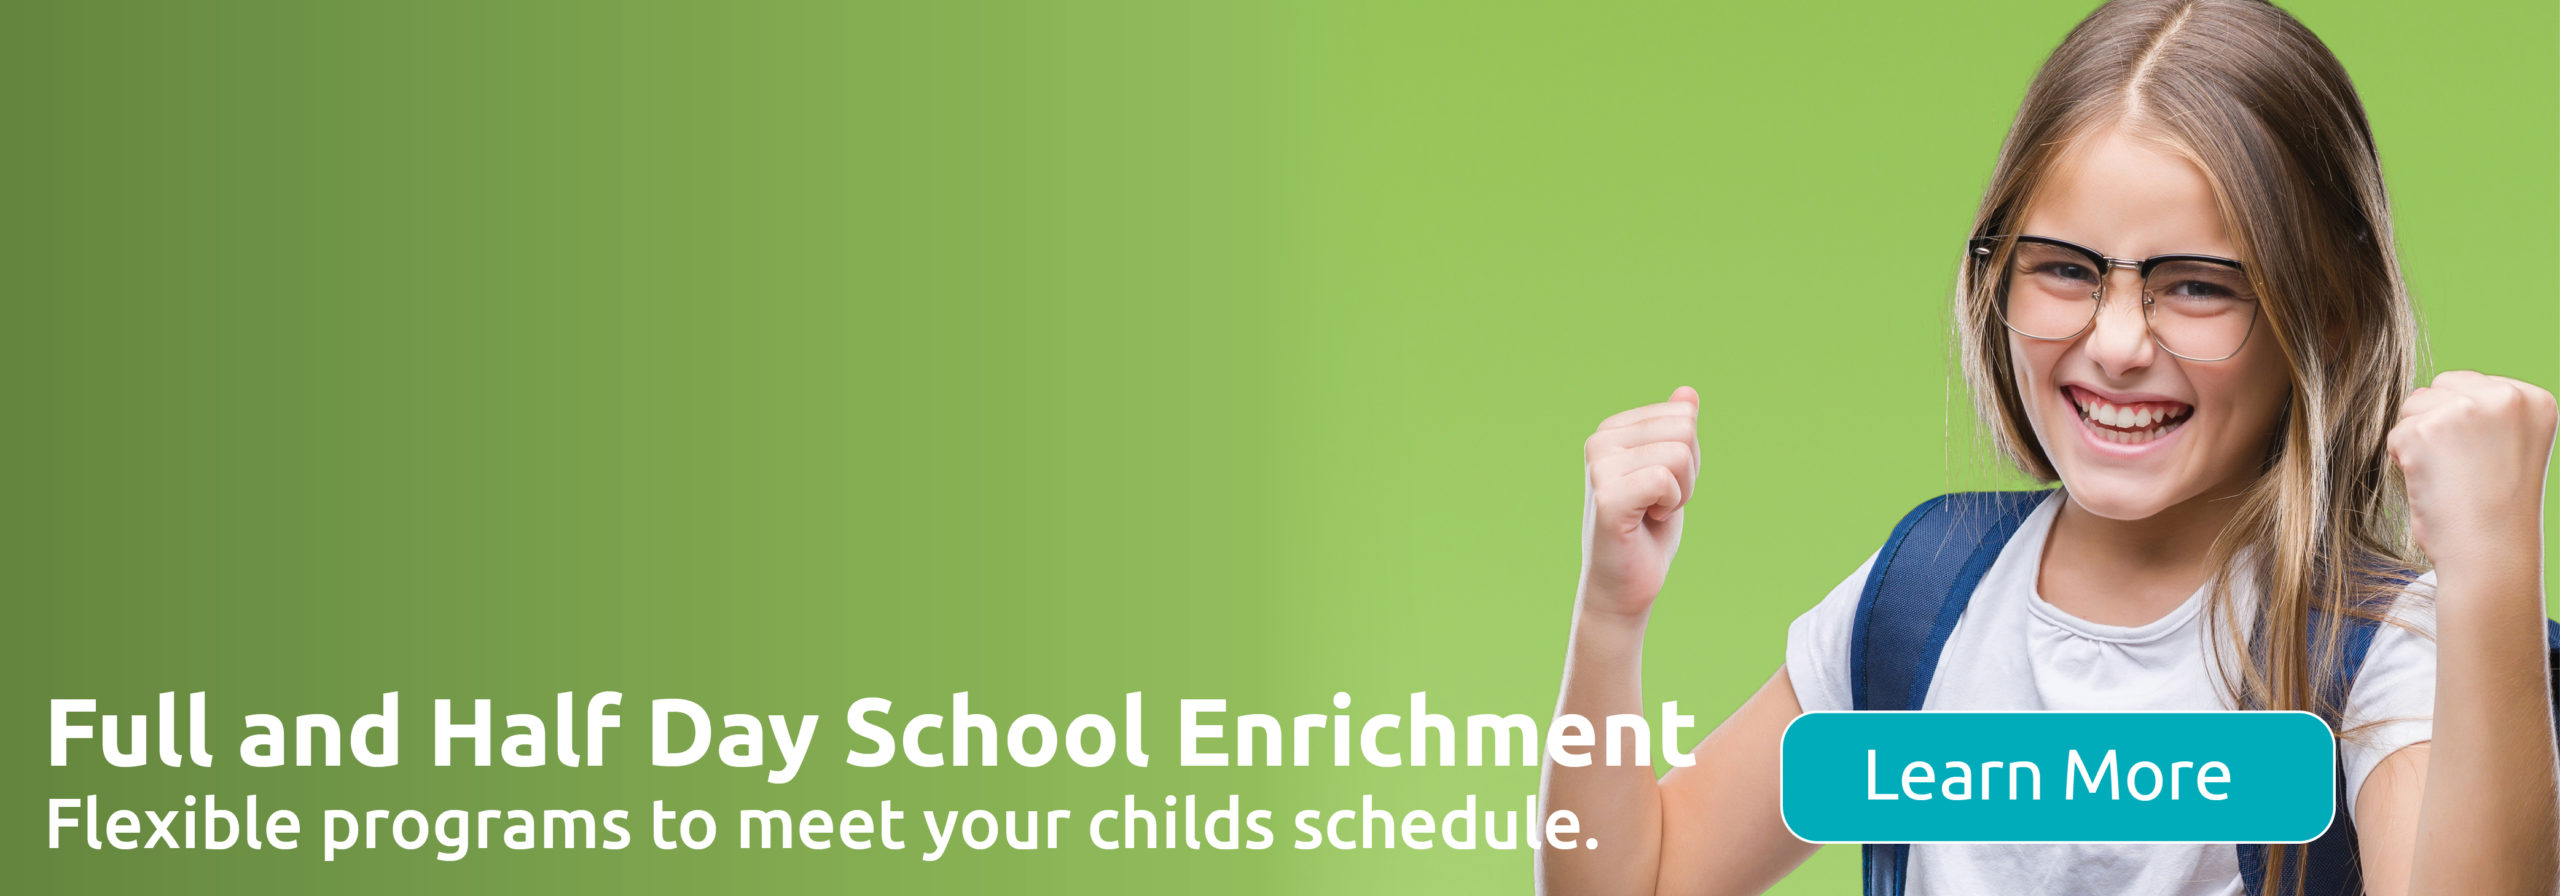 School Enrich Web Slide